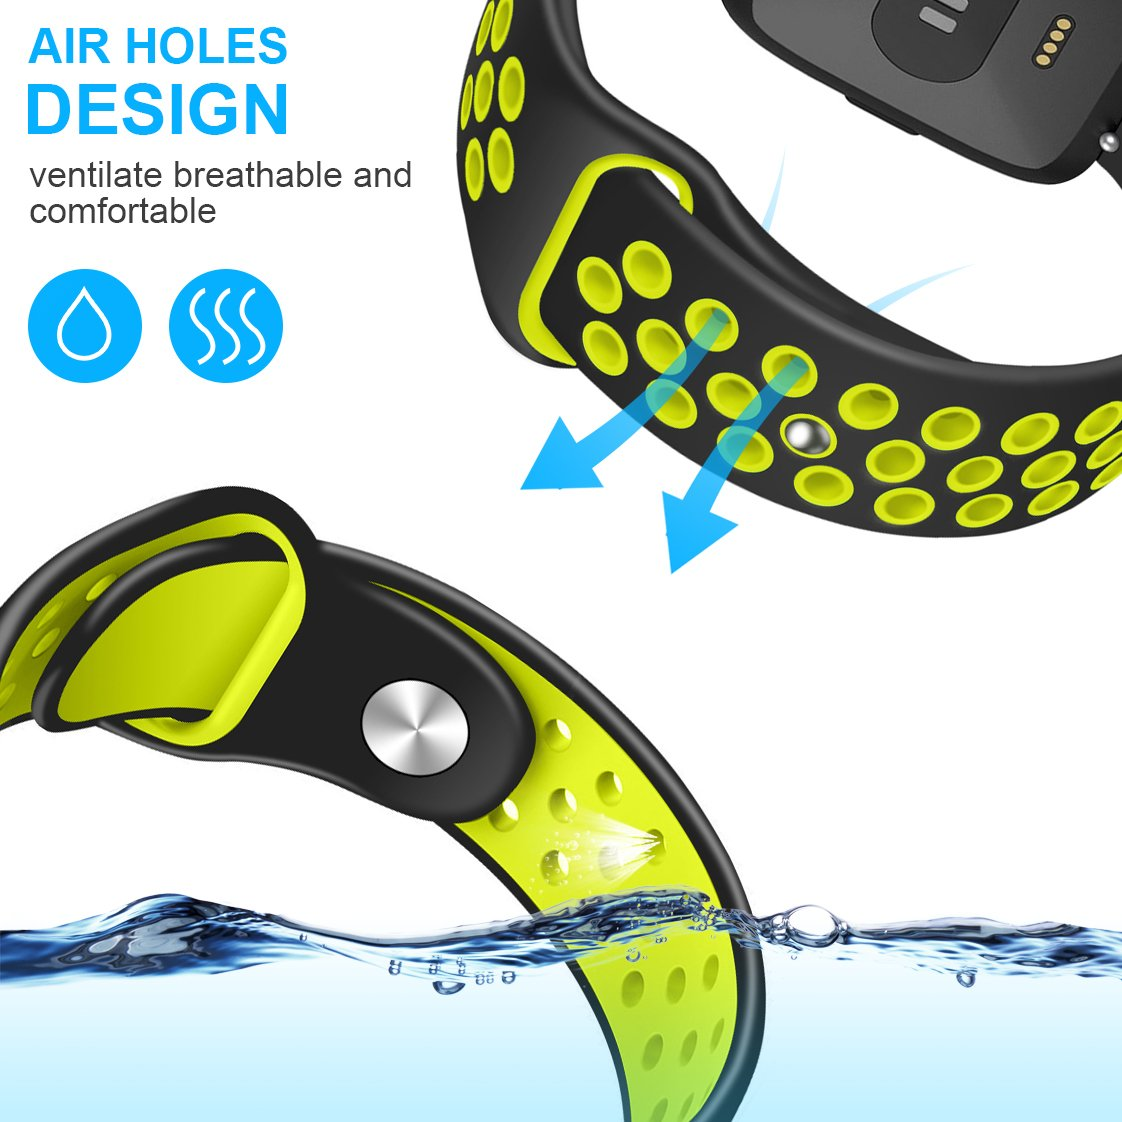 Humenn Bands Compatible for Fitbit Versa Accessory Breathable Sport Bands Air Holes Compatible Fitbit Versa Smartwatch HUMENN Inc.